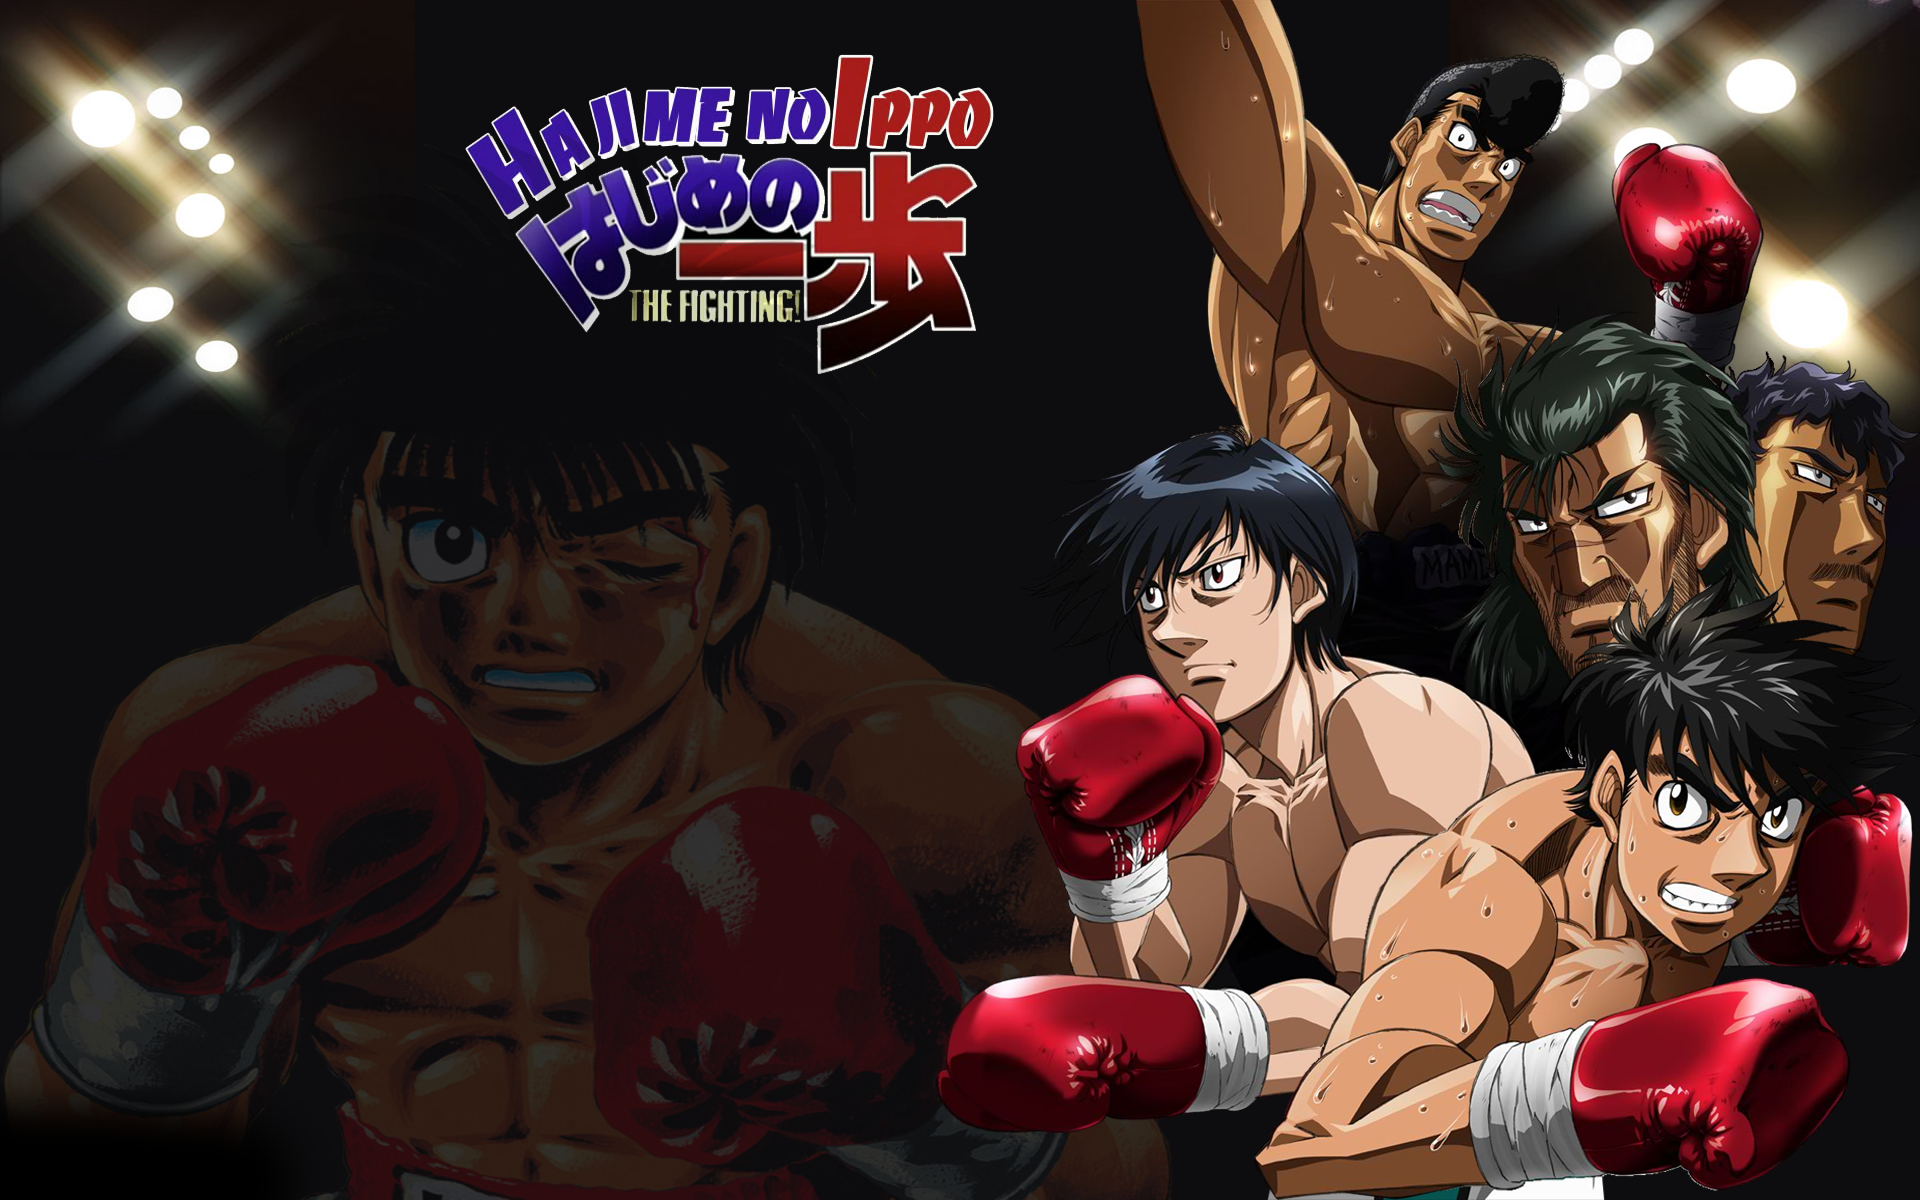 Hajime no Ippo is one of the all time most popular sports manga in Japan with countless anime, games, films, and other adaptations over its' history.